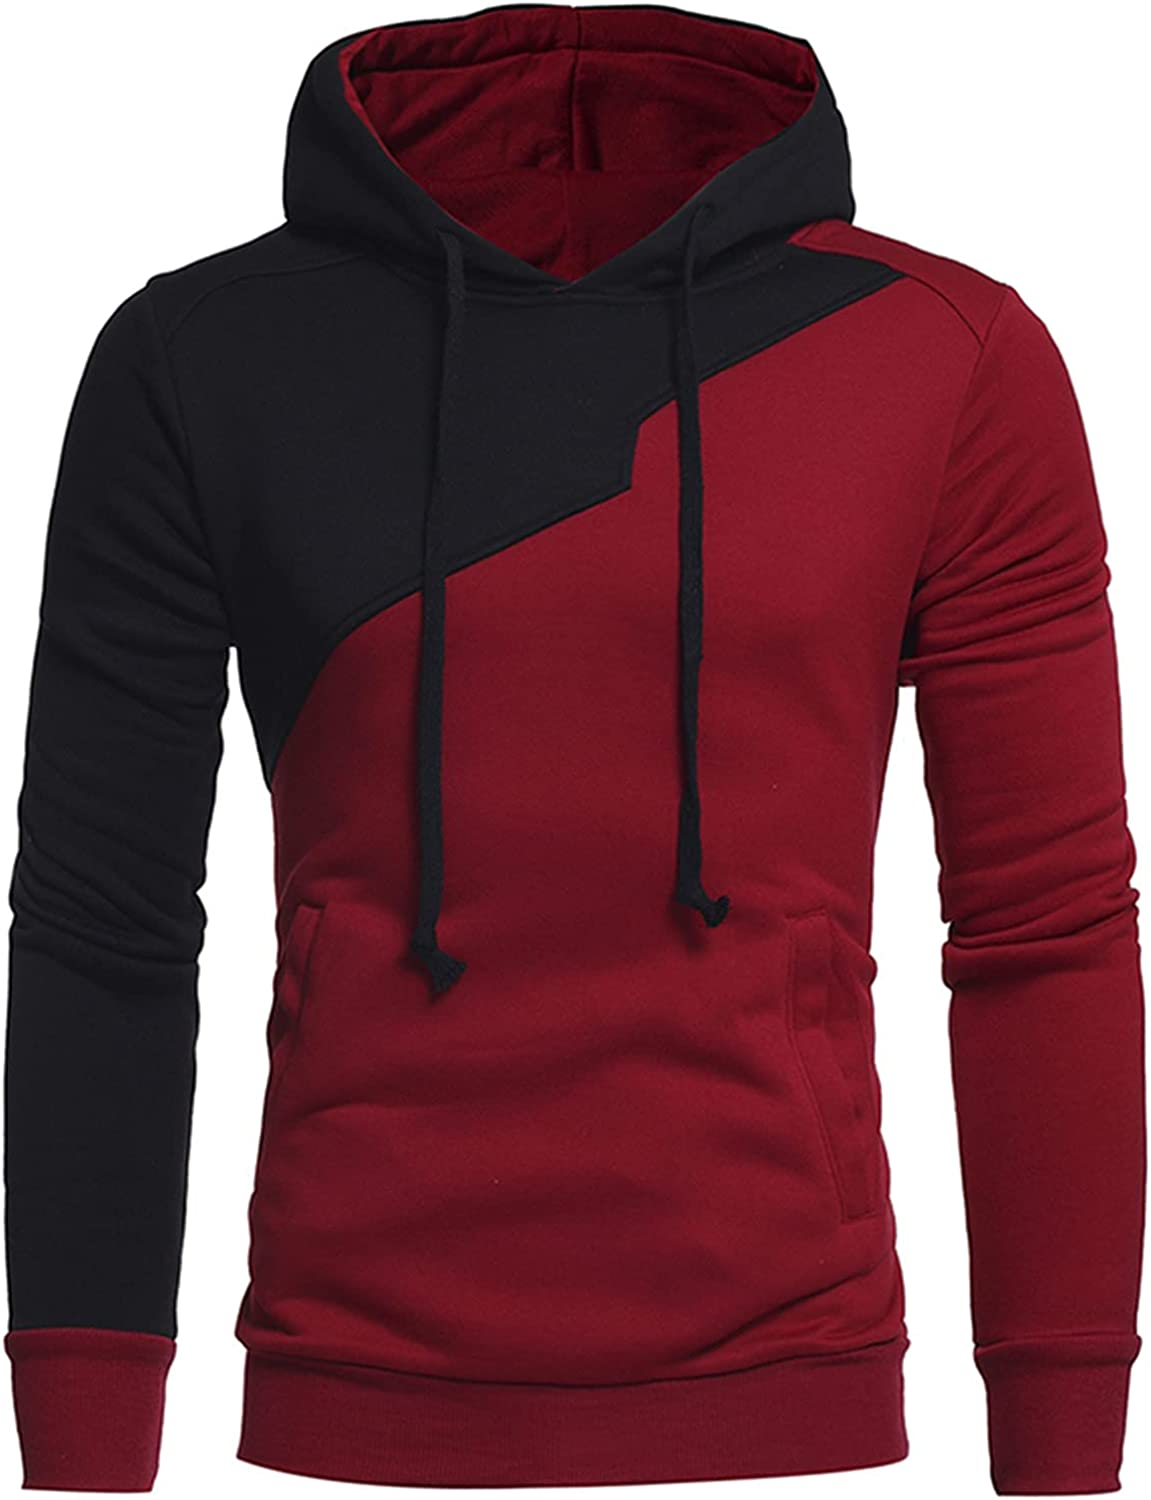 XXBR Stitching Hoodies for Mens, Color Block Patchwork Drawstring Casual Hooded Sweatshirts Workout Fitness Pullover